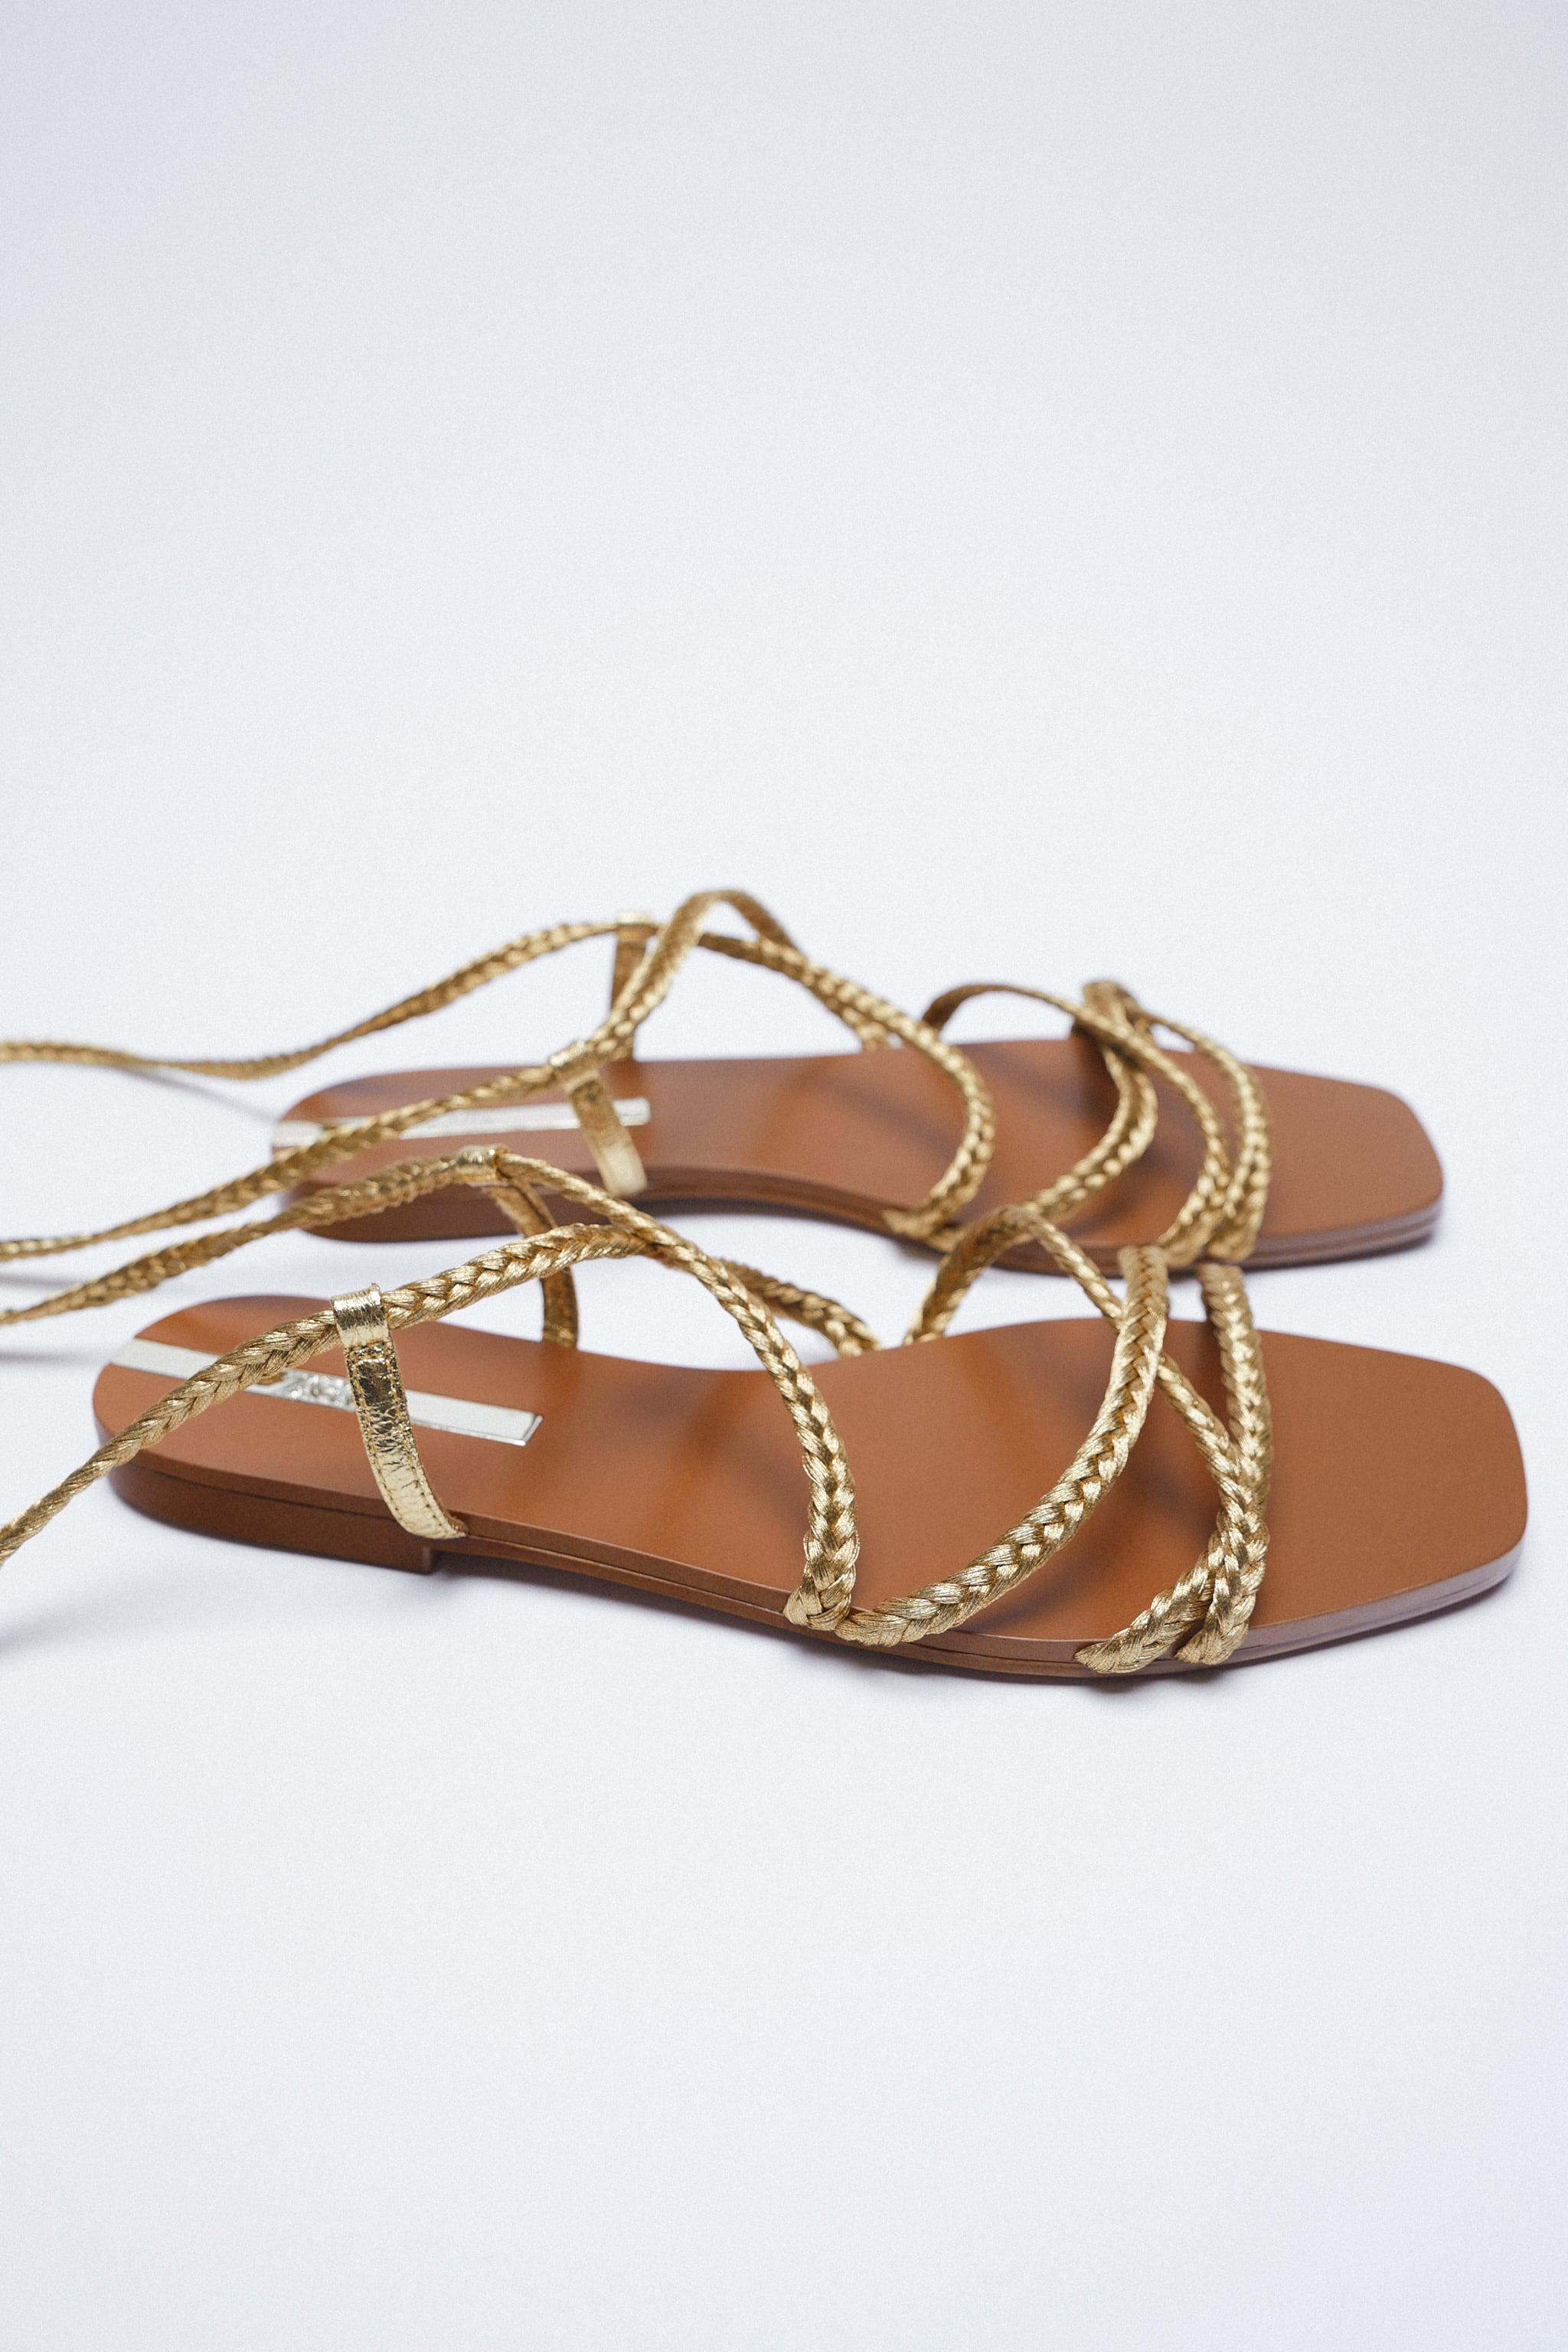 LOW HEEL WOVEN METALLIC SANDALS WITH TIED ANKLE 3